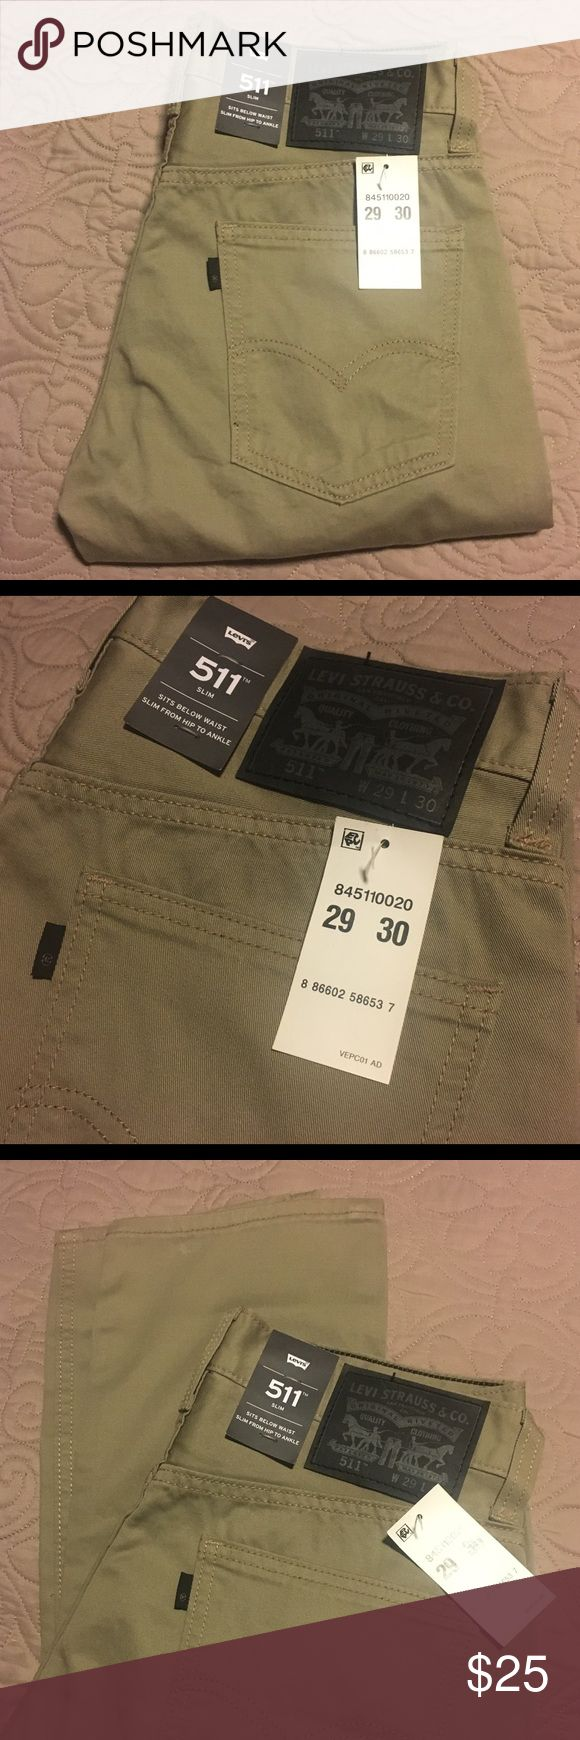 Levi's slim fit 511 Khakis NEW 29 x 30 Brand new with tags. Slim fit khakis Levi's Pants Chinos & Khakis